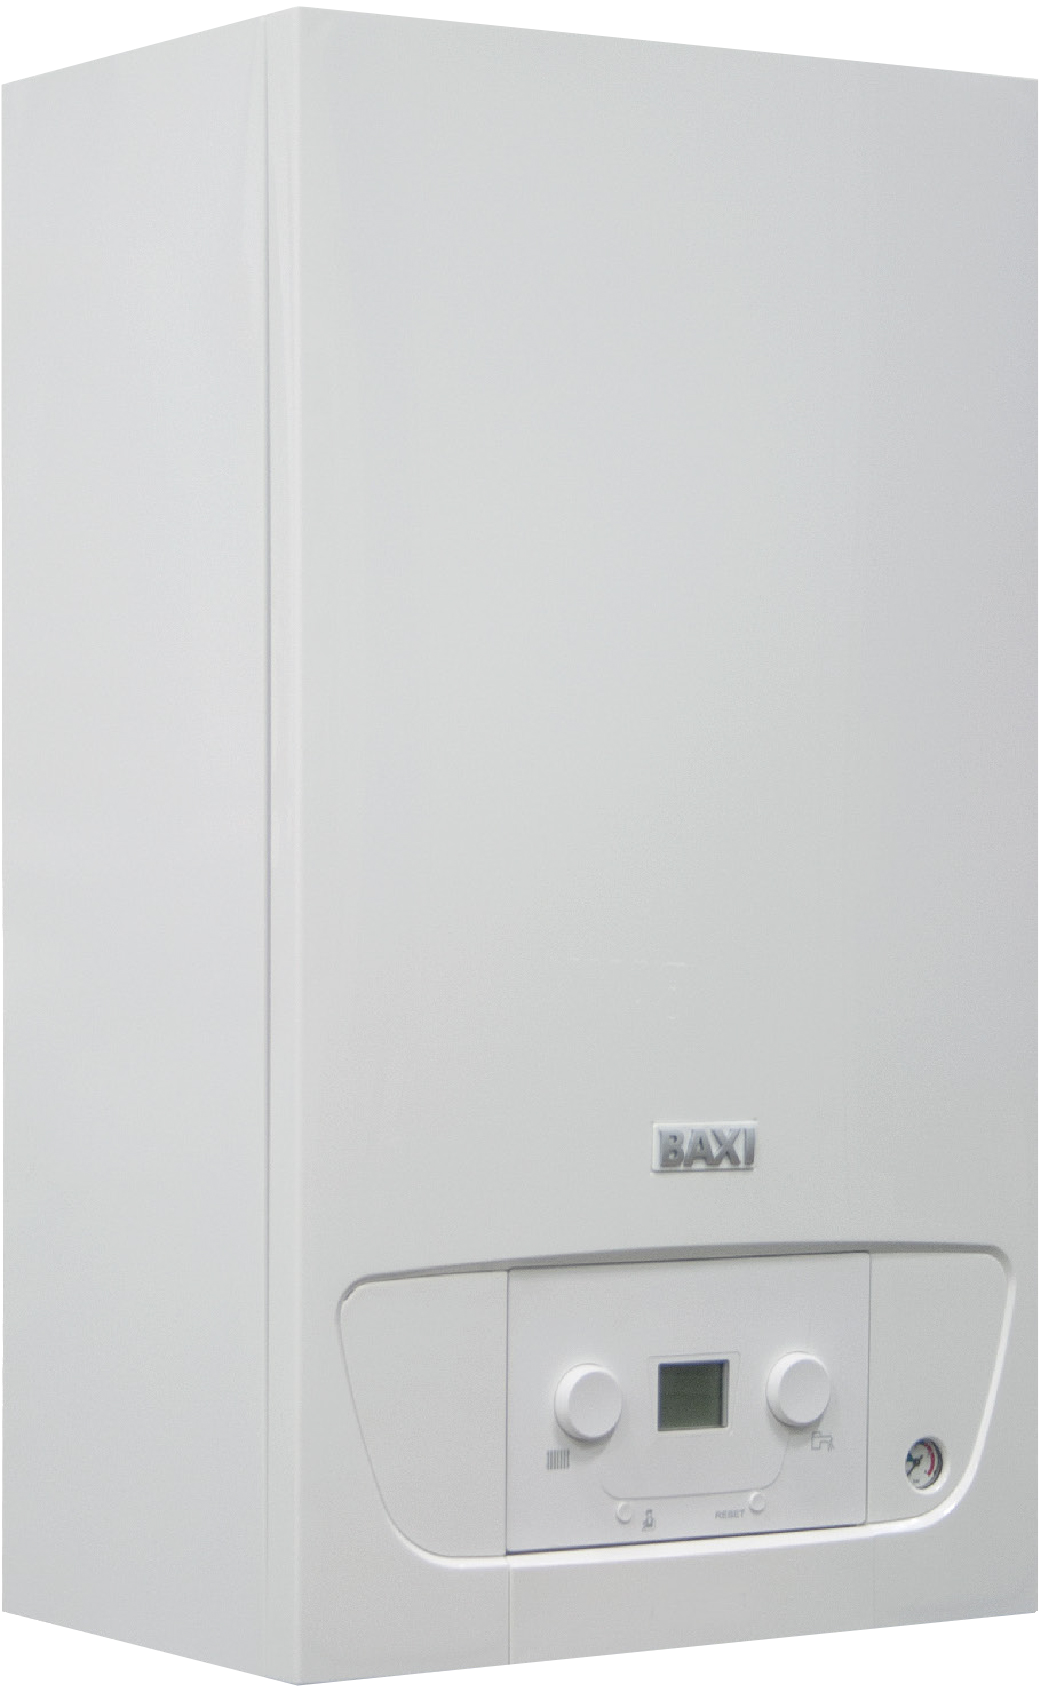 Caldaia baxi evolution prime scontornato in png